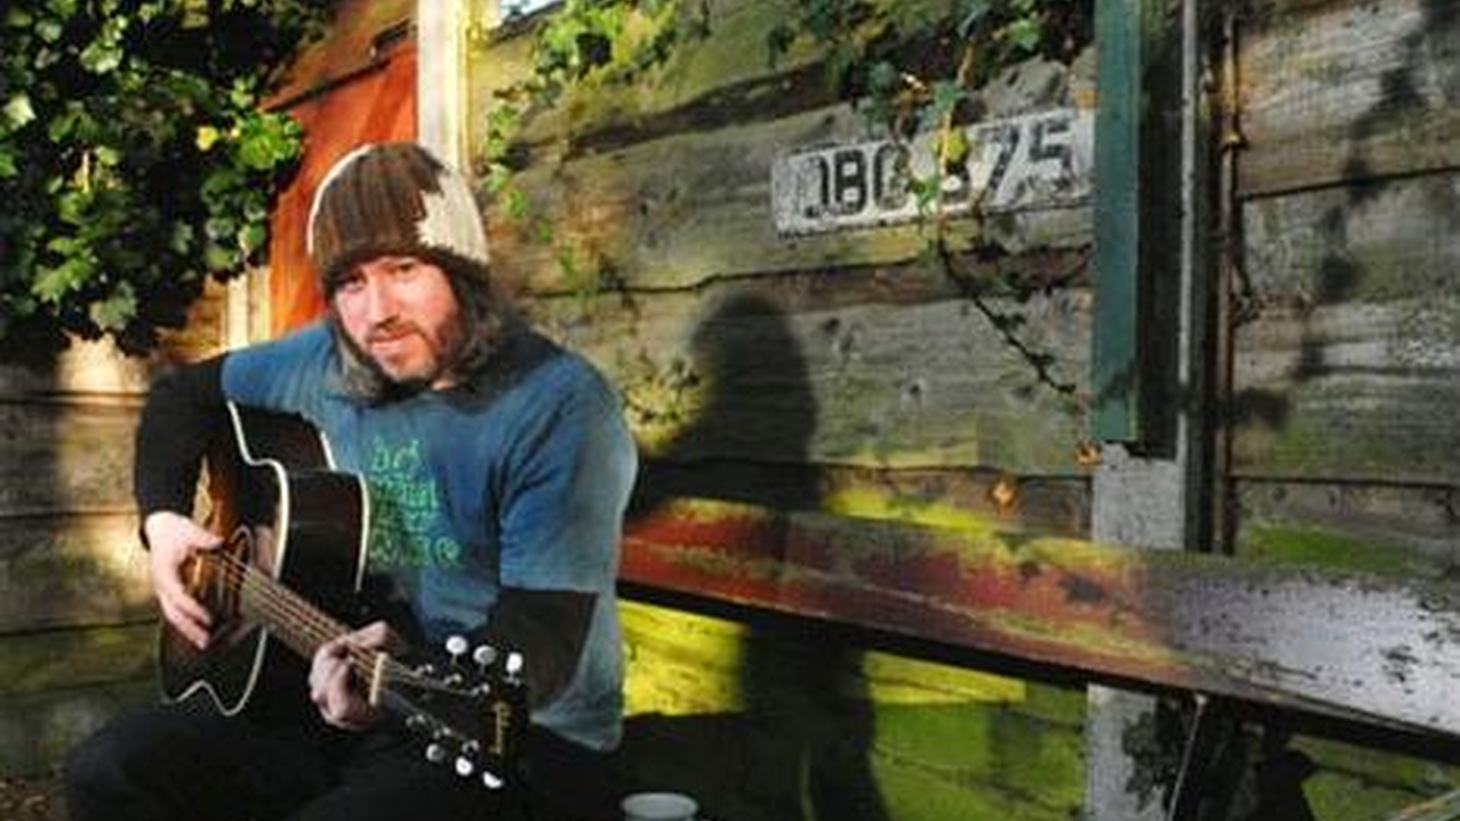 """It's been four long years since we had a proper Badly Drawn Boy release. With his creativity reignited by his contributions to an English television soundtrack, Damon Gough went into the studio and let it all flow. He just released It's What I'm Thinking, the first CD in what he plans to be a trilogy. His personal and conversational style intact, Today's Top Tune ponders the past and present on """"What Tomorrow Brings."""""""